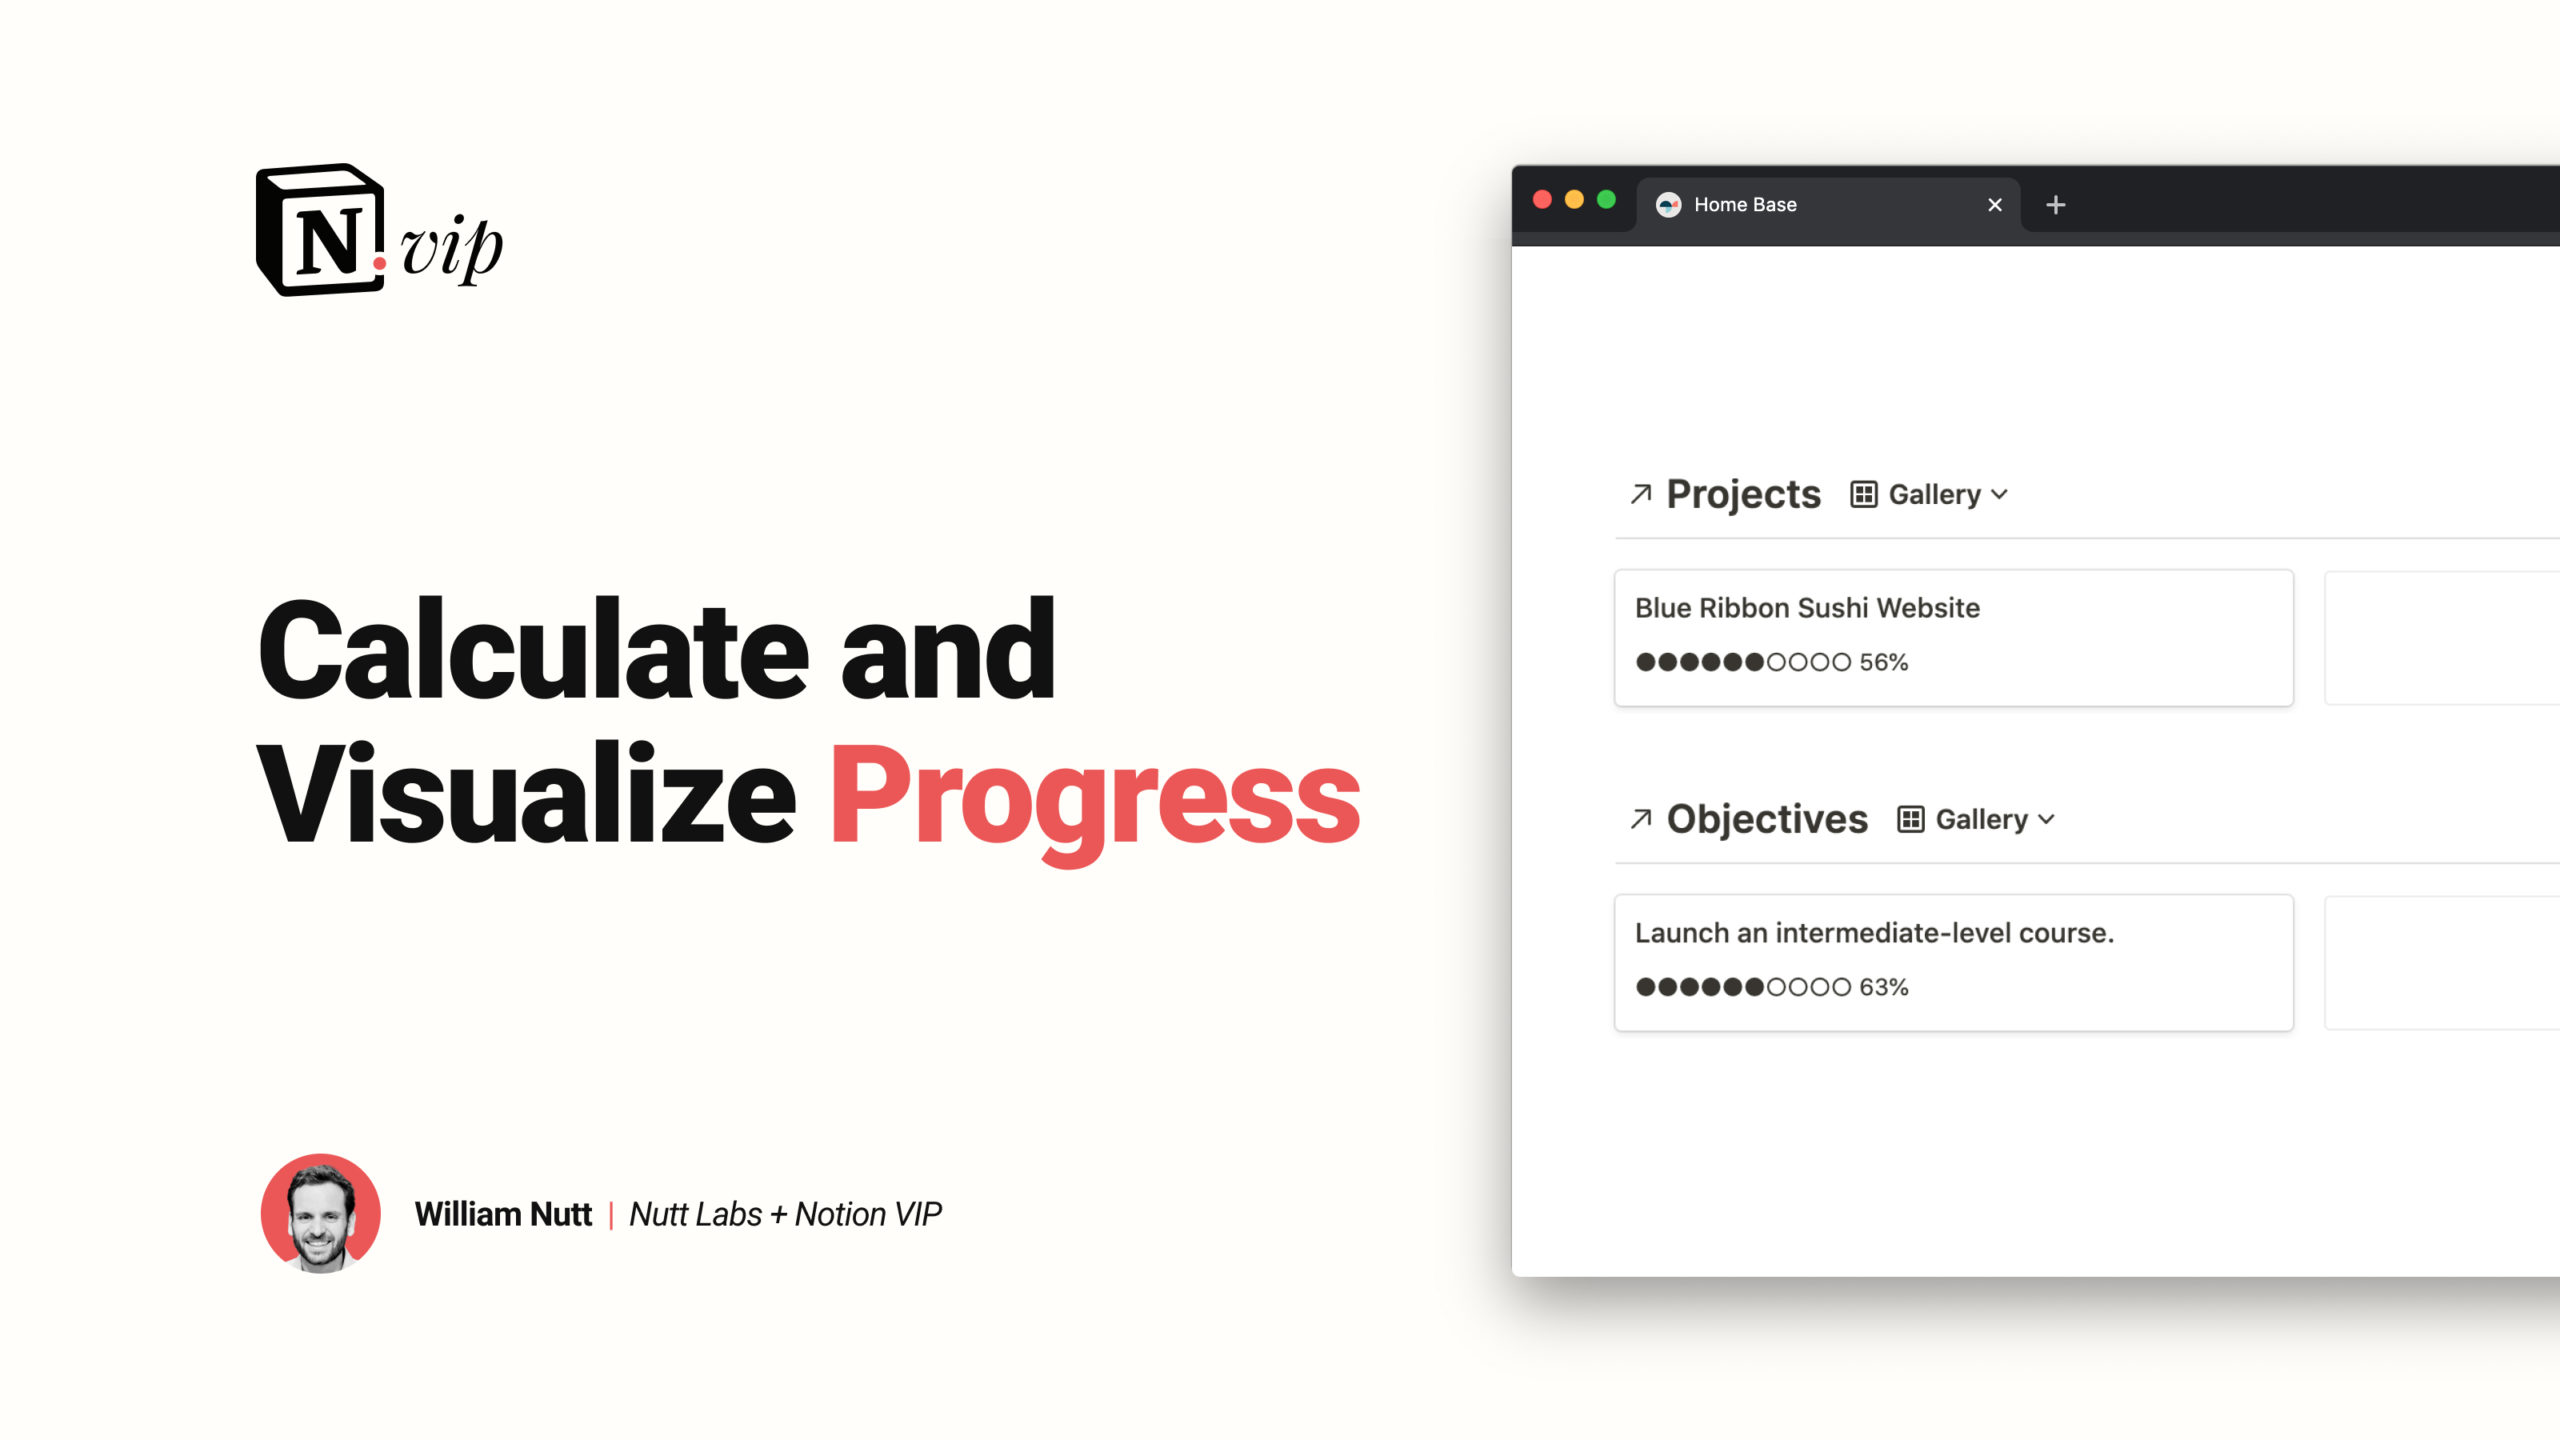 Calculate and Visualize Progress in Notion